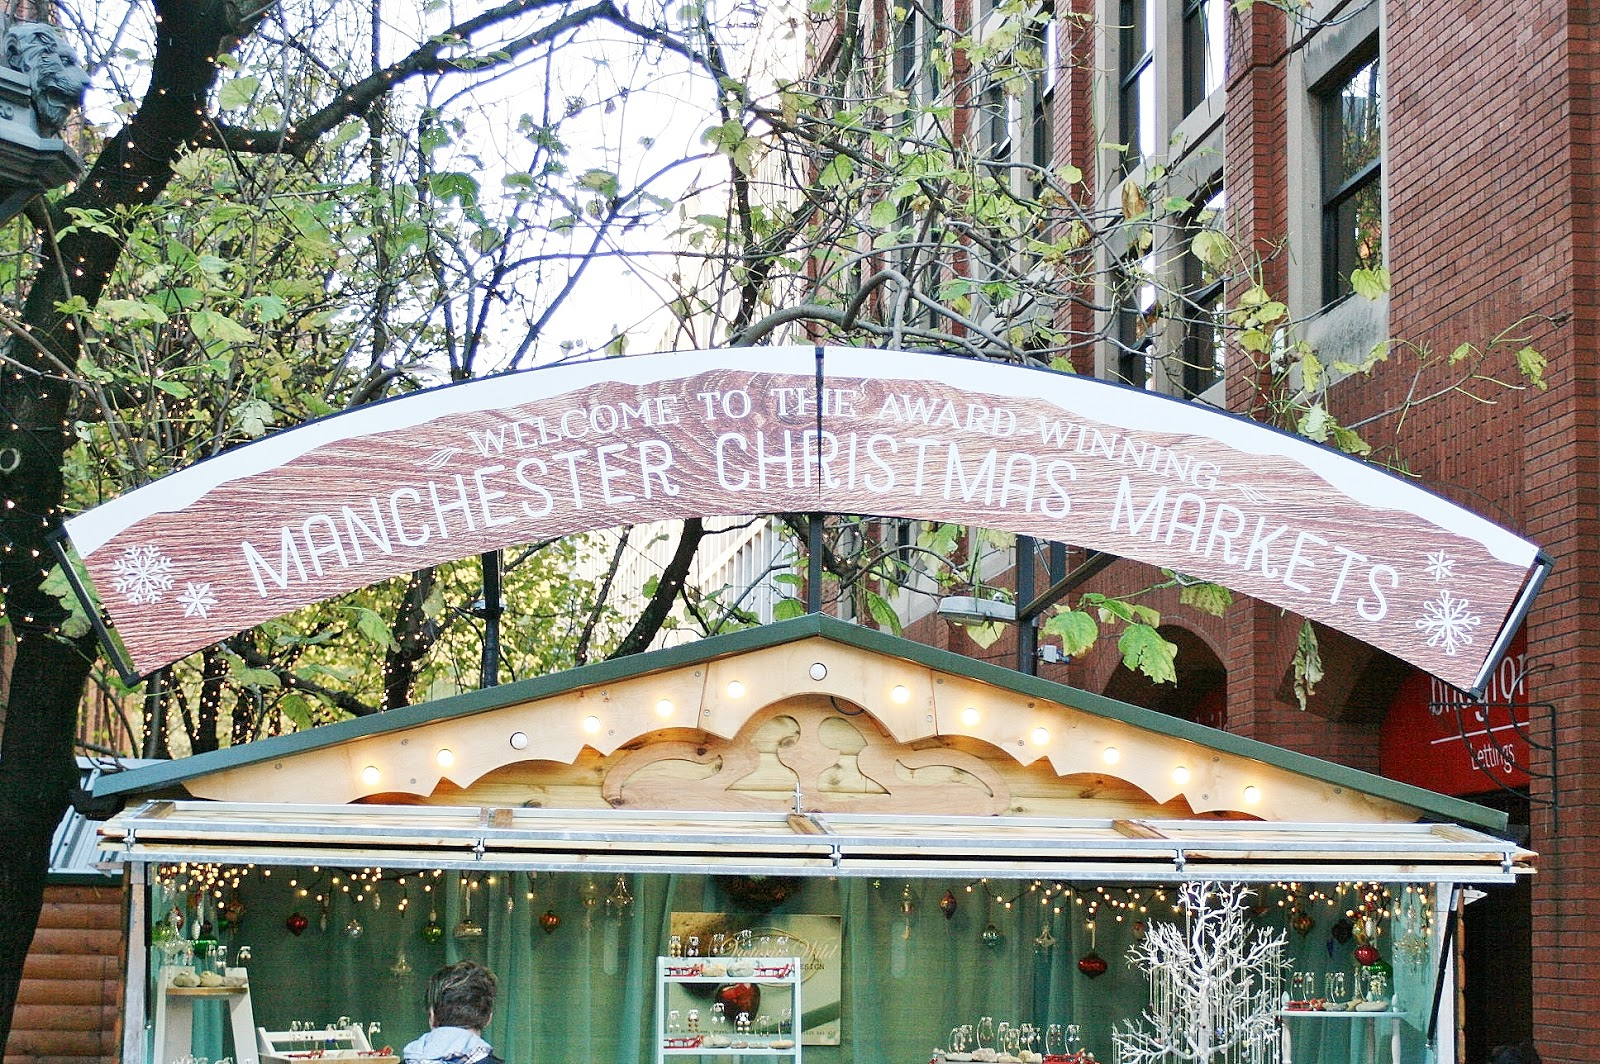 Penney Chic Manchester christmas market 2014